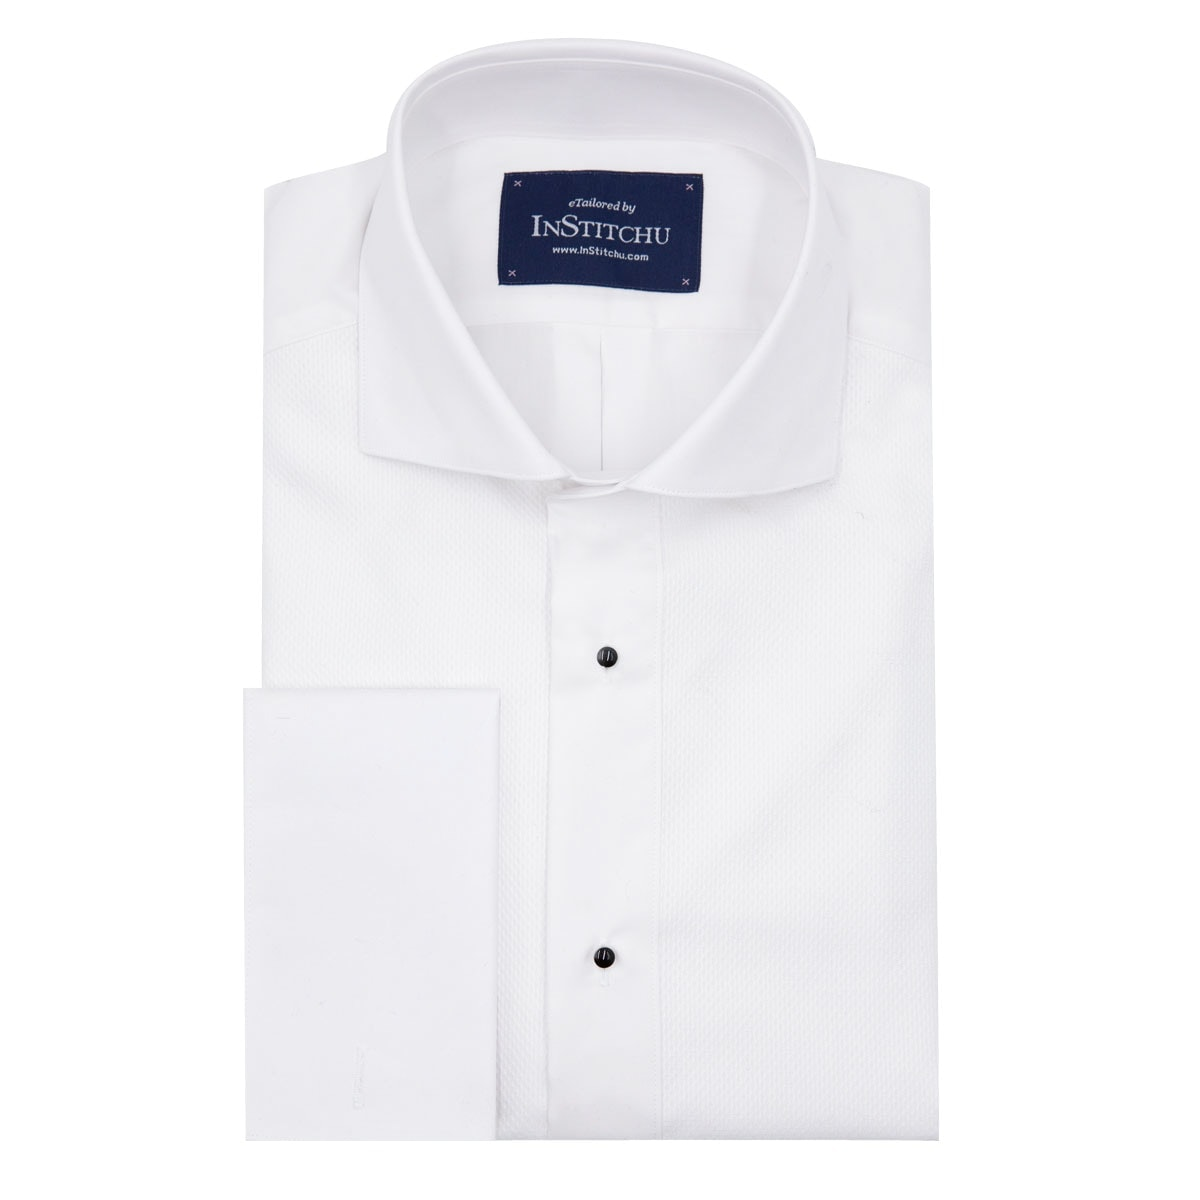 InStitchu Collection Wrinkle Free Pique Tuxedo Shirt